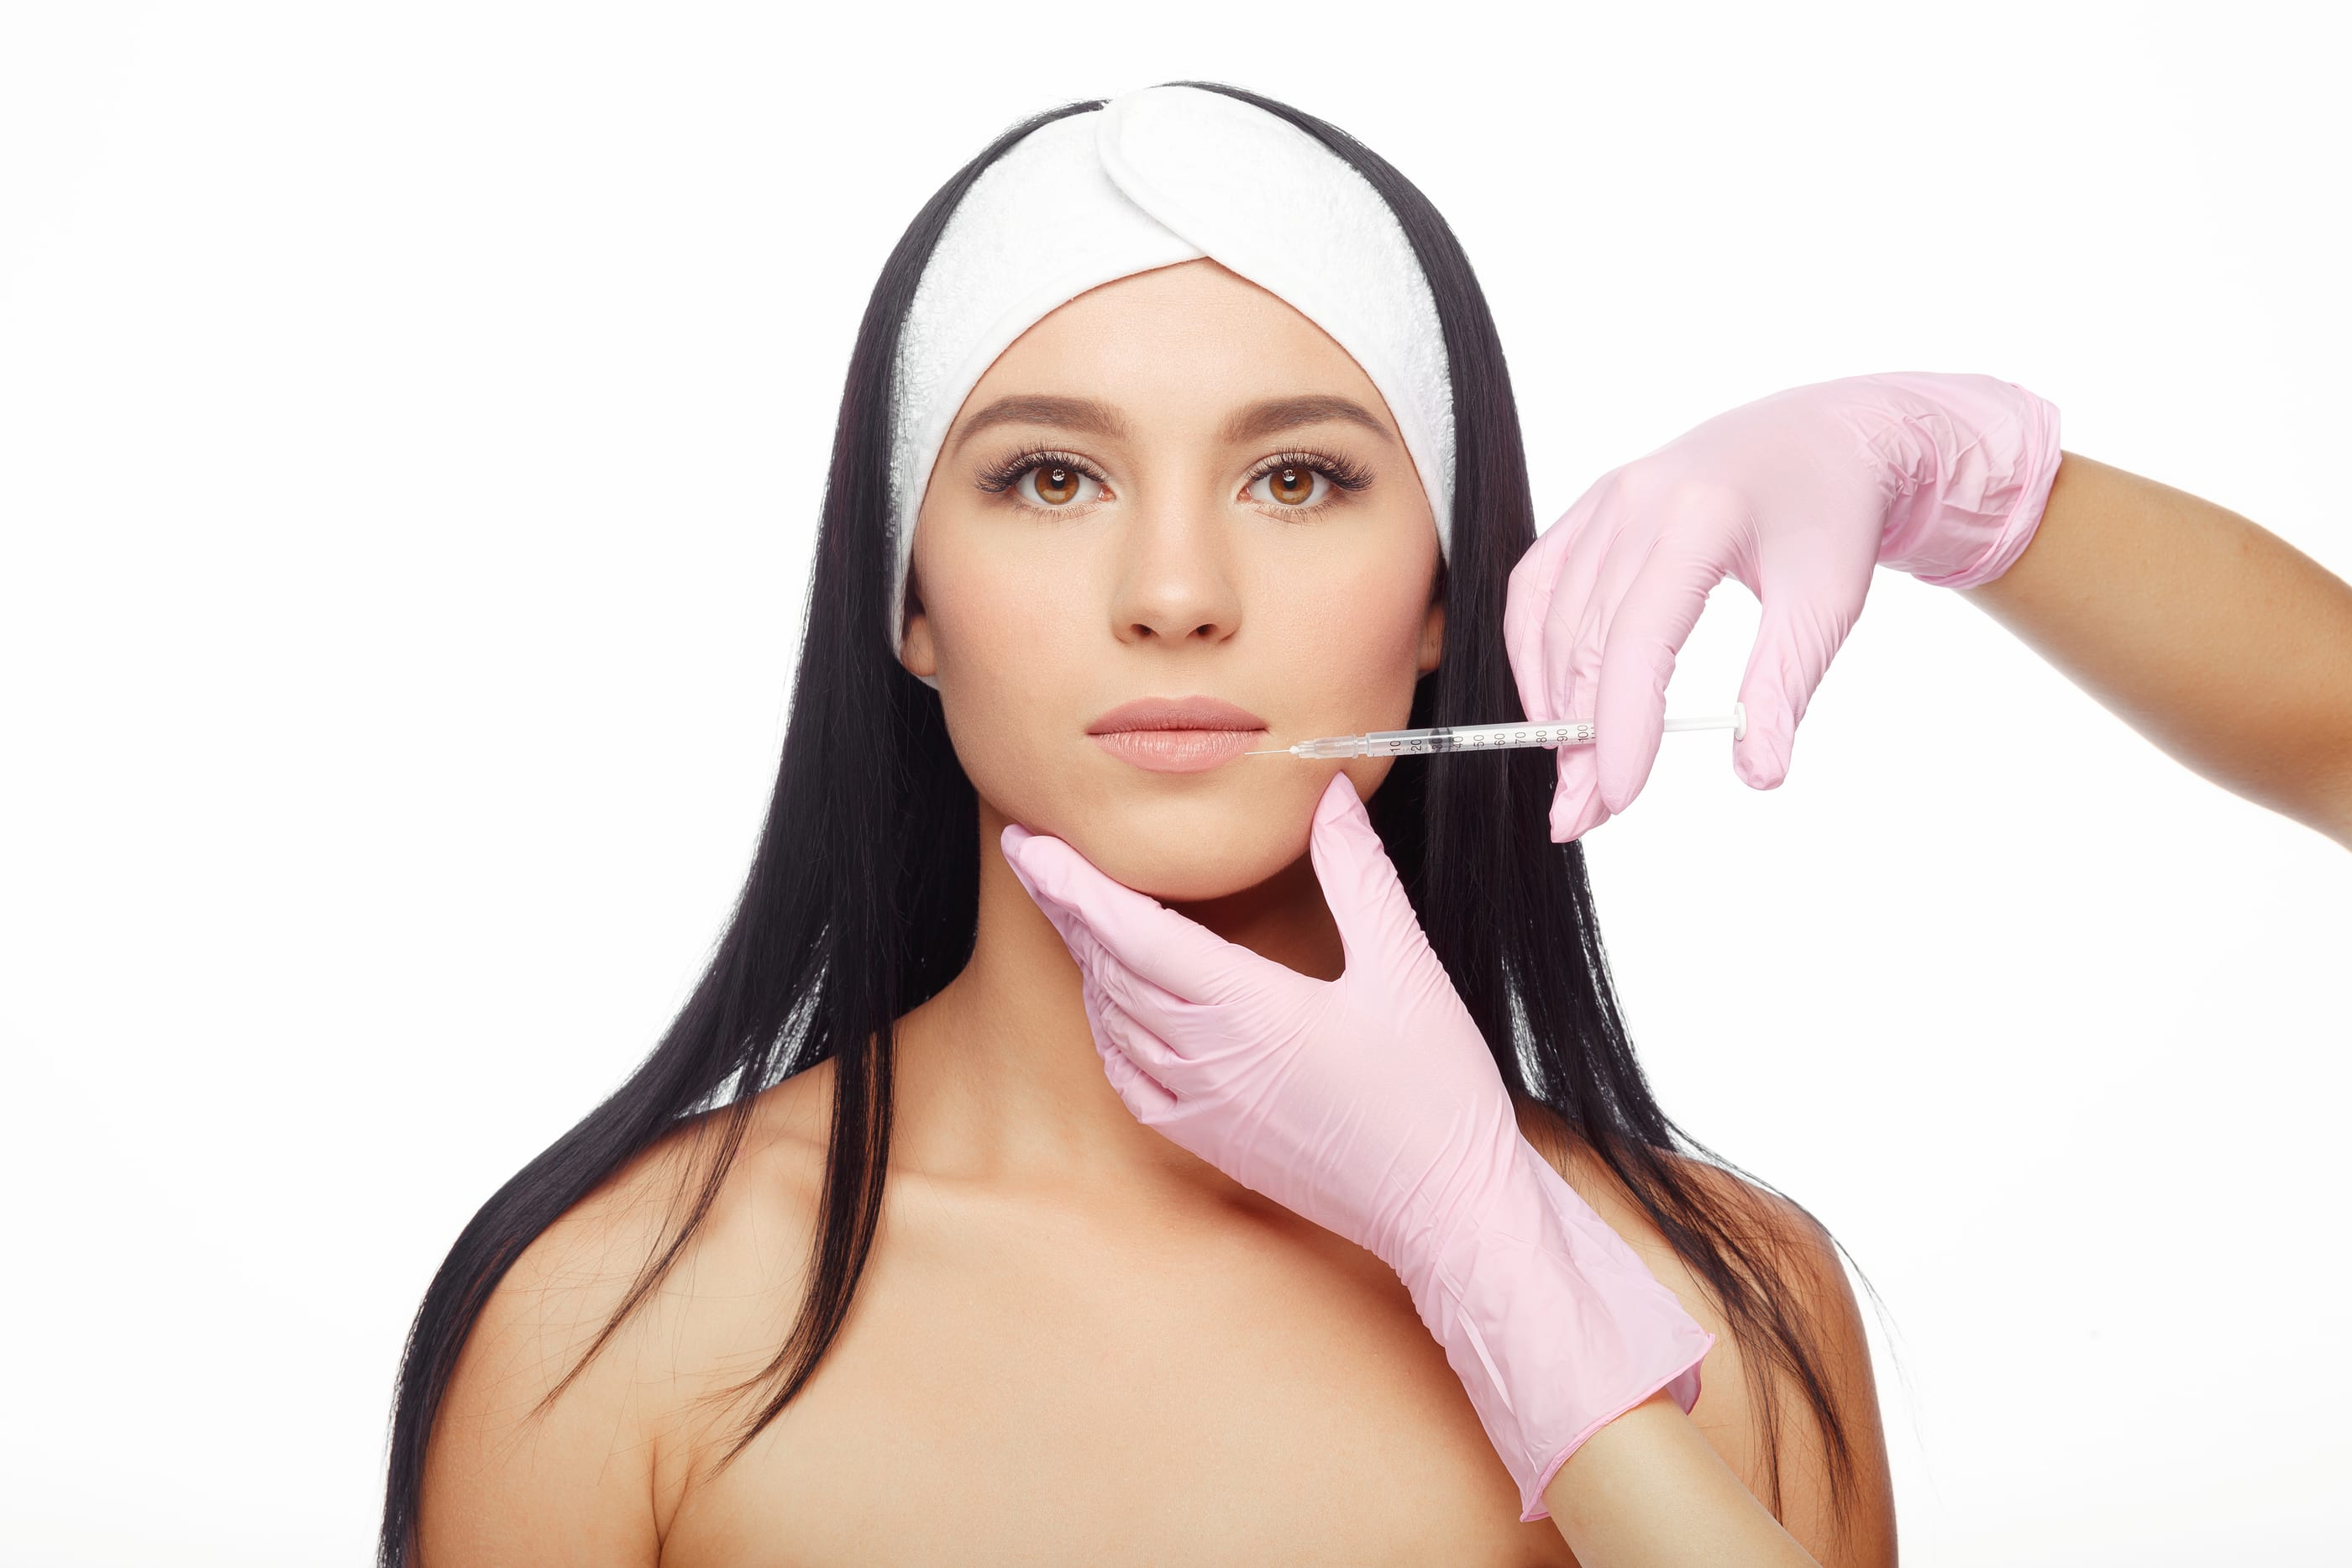 Brunette Receiving Lip Injection By Pink Gloved Hands